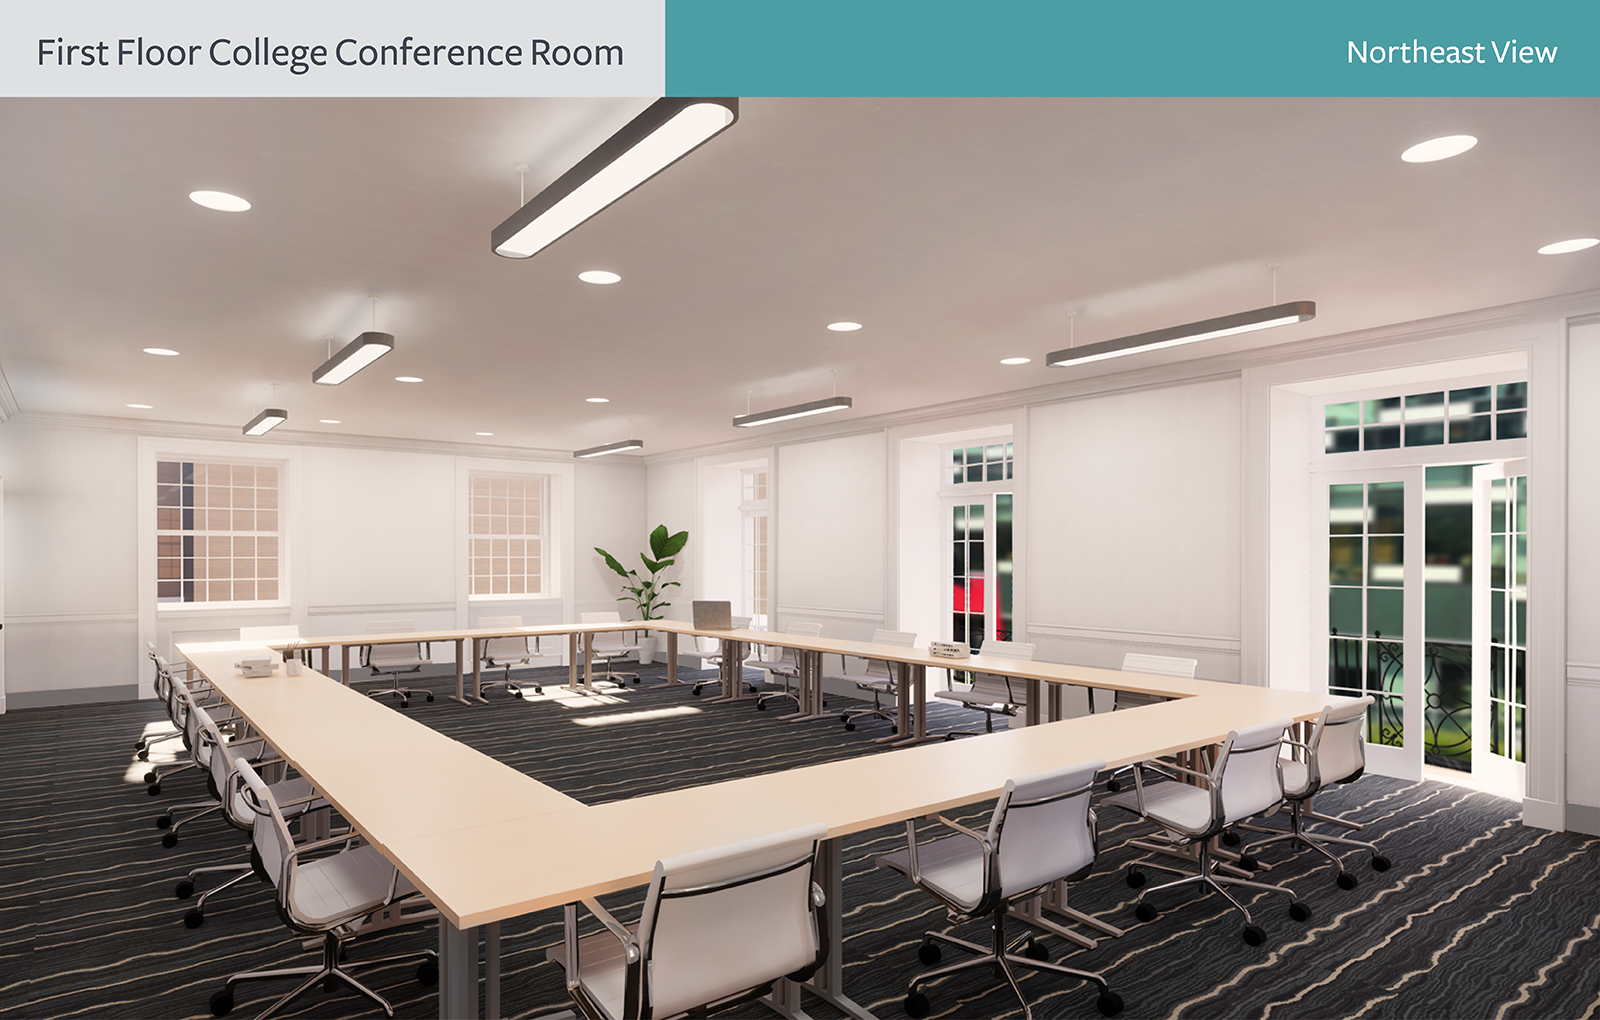 The rendering of First Floor College Conference Room from the northeast view